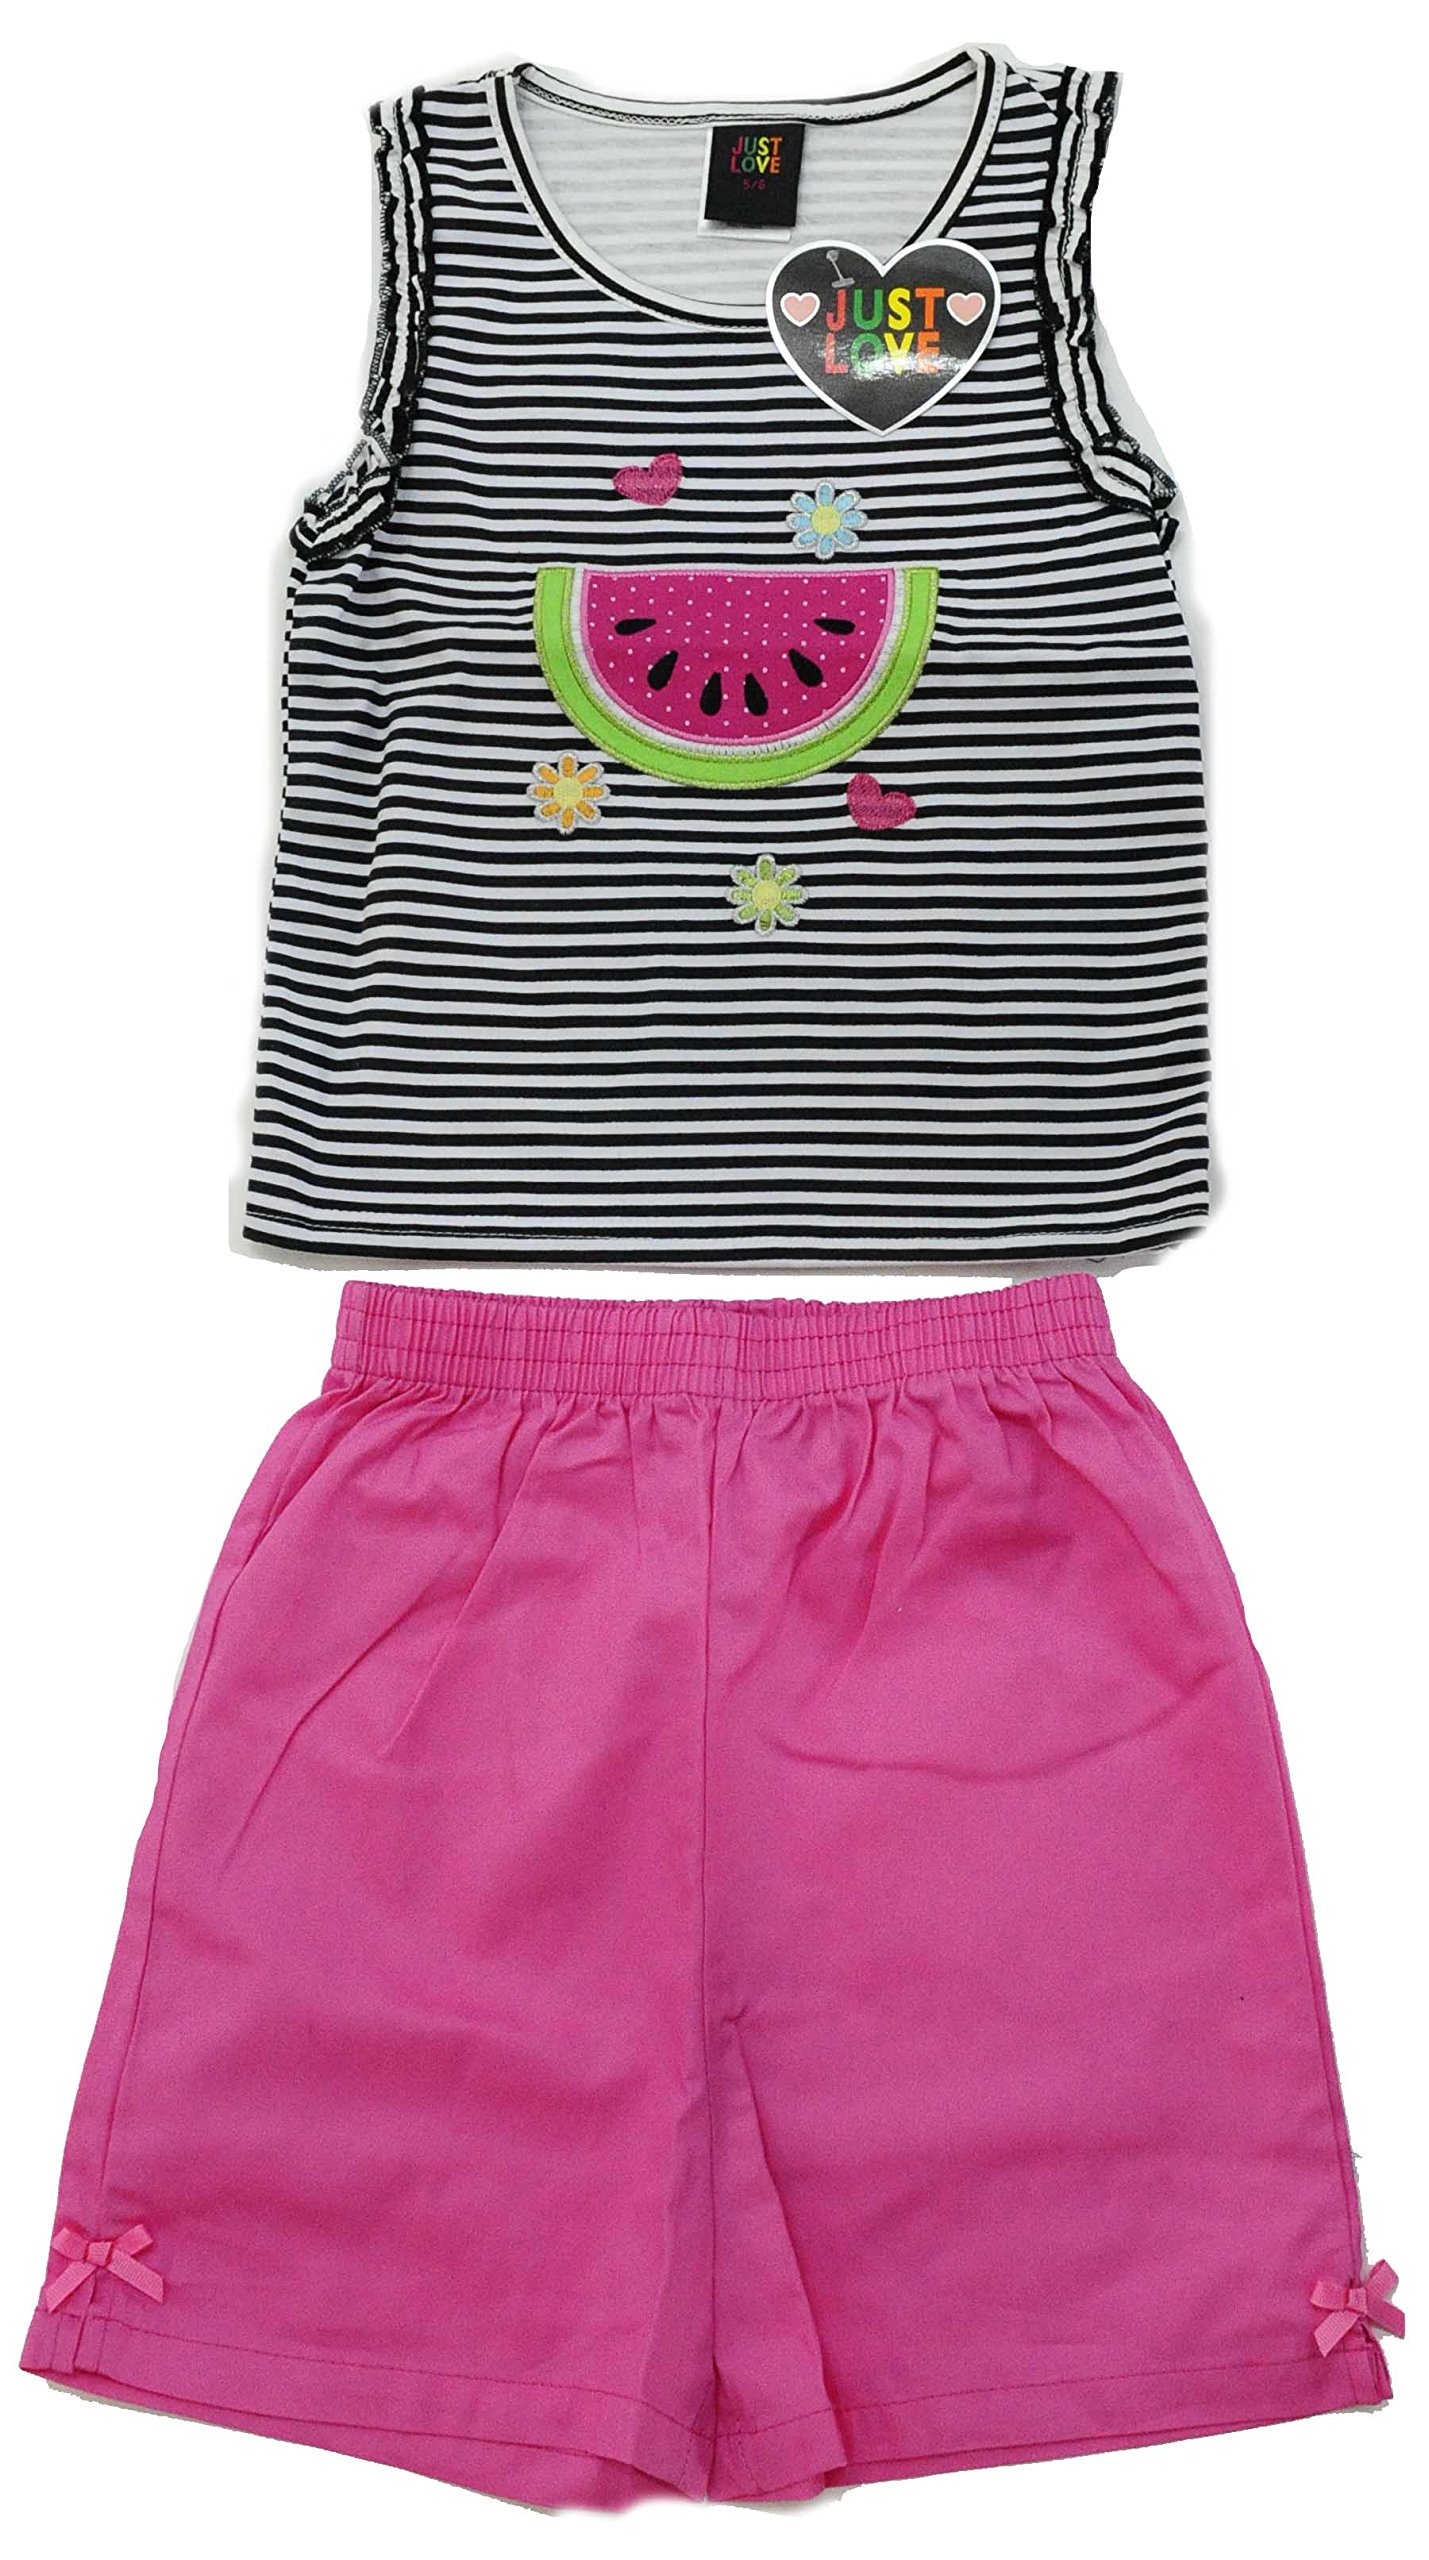 Just Love 4008-2T Two Piece Girls Shorts Set